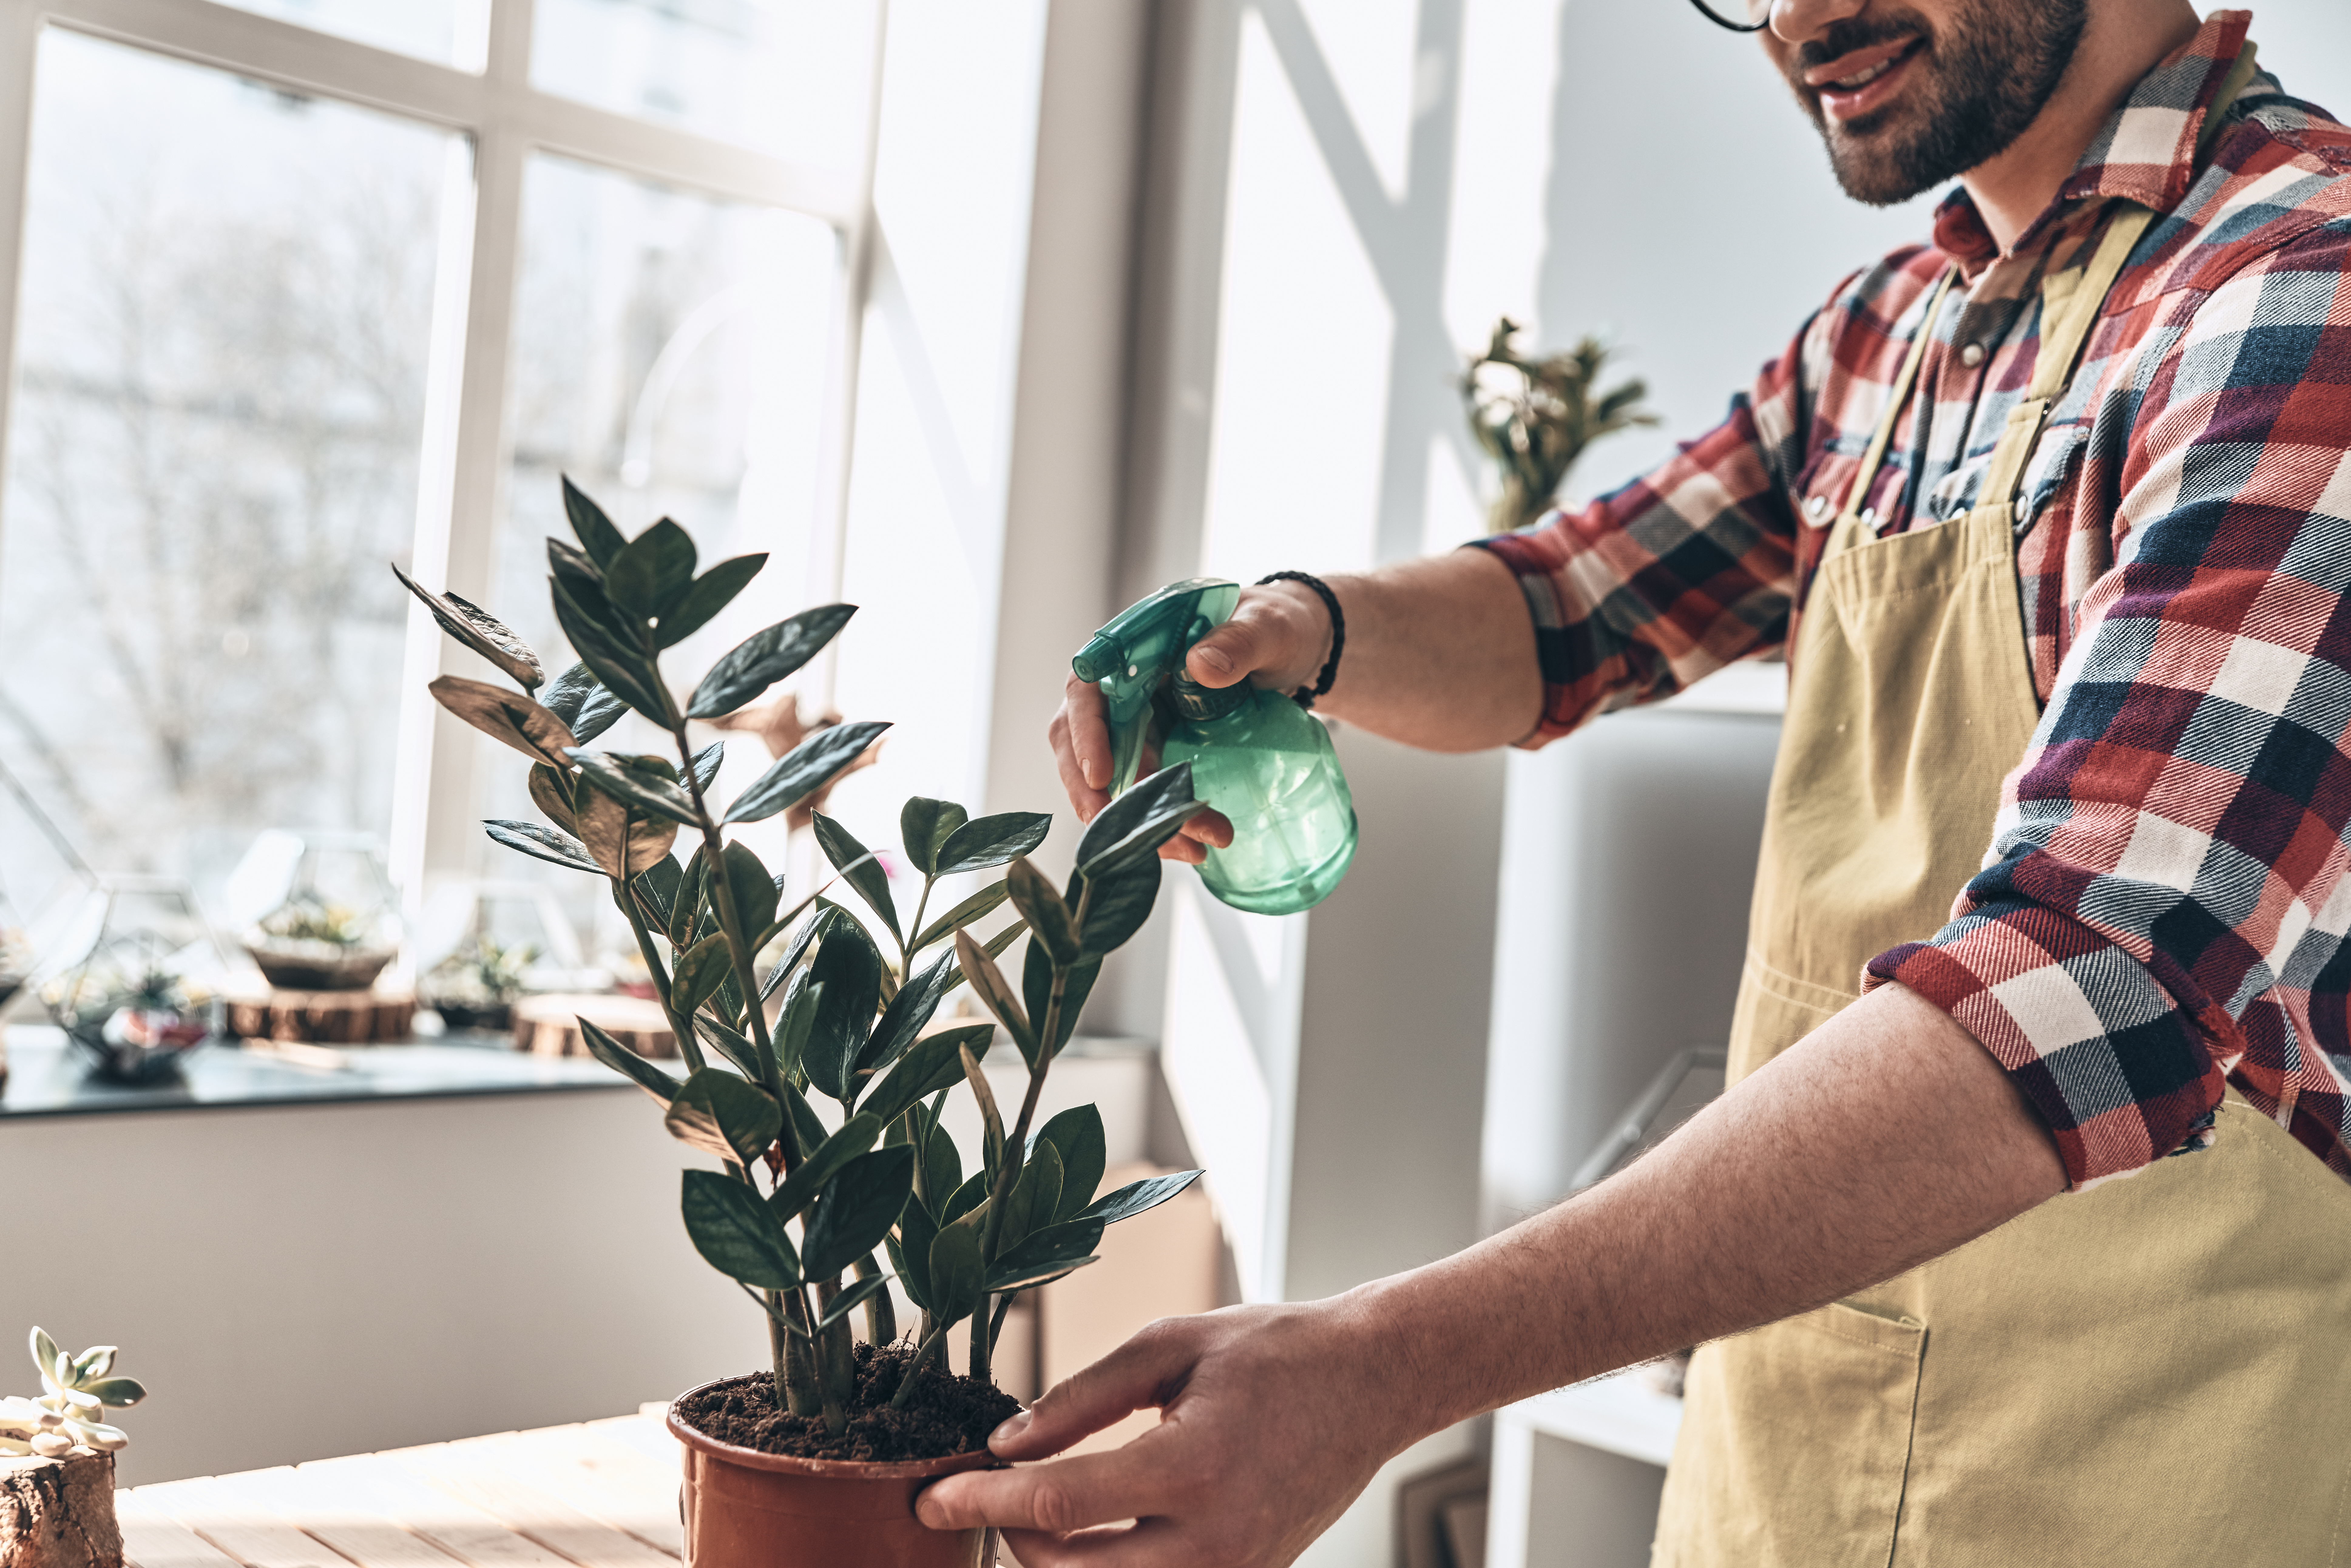 Can You Spray Plants with Alcohol? | Home Guides | SF Gate  Best Houseplants Html on replanting houseplants, easy houseplants, beautiful houseplants,